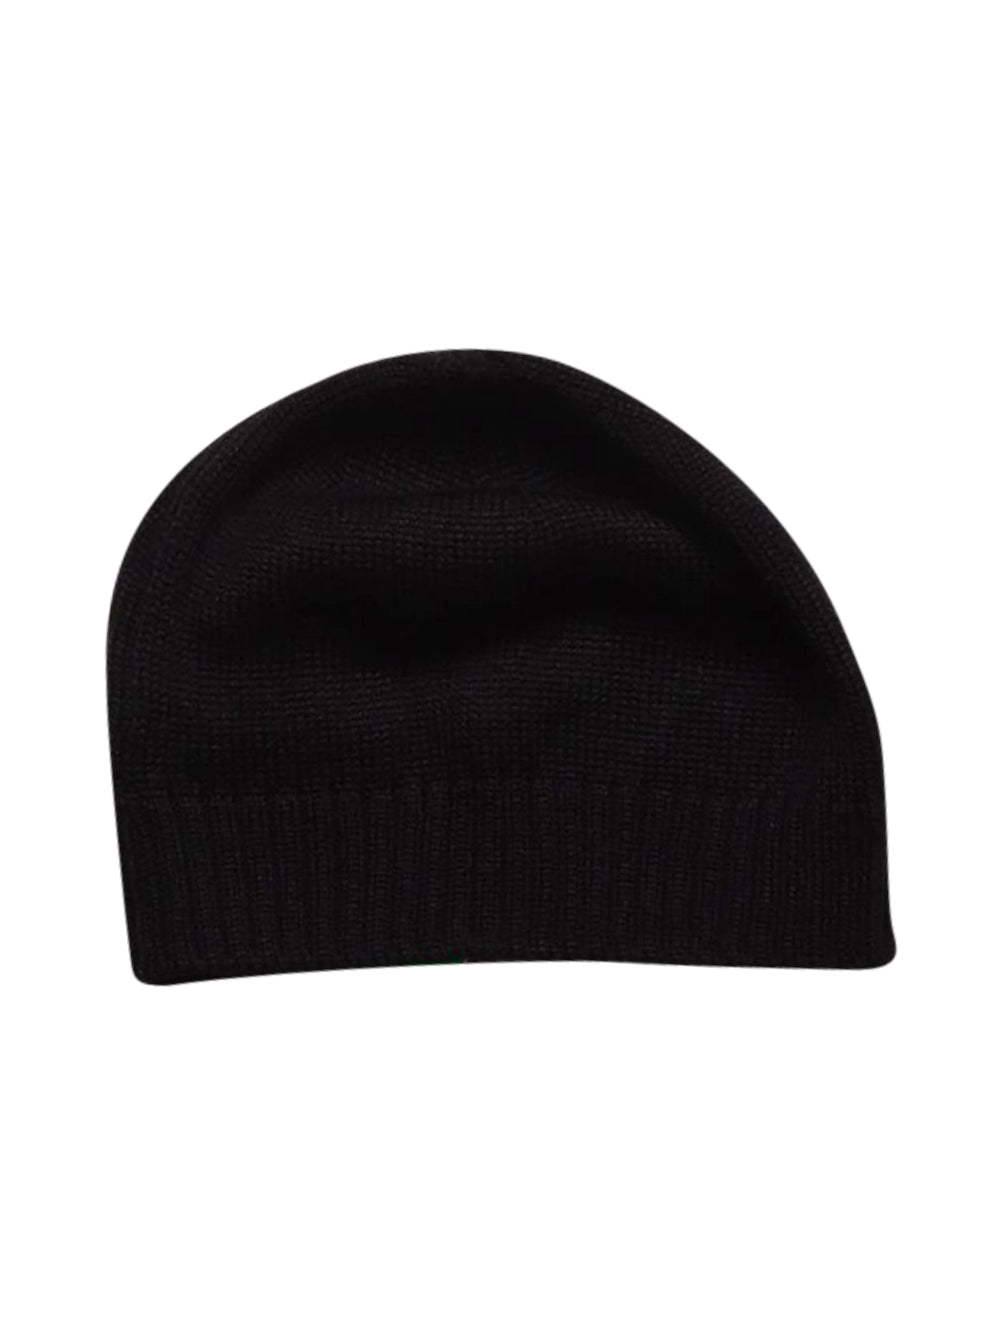 Back photo of Preloved Guess Black Woman's hat - size 10/M